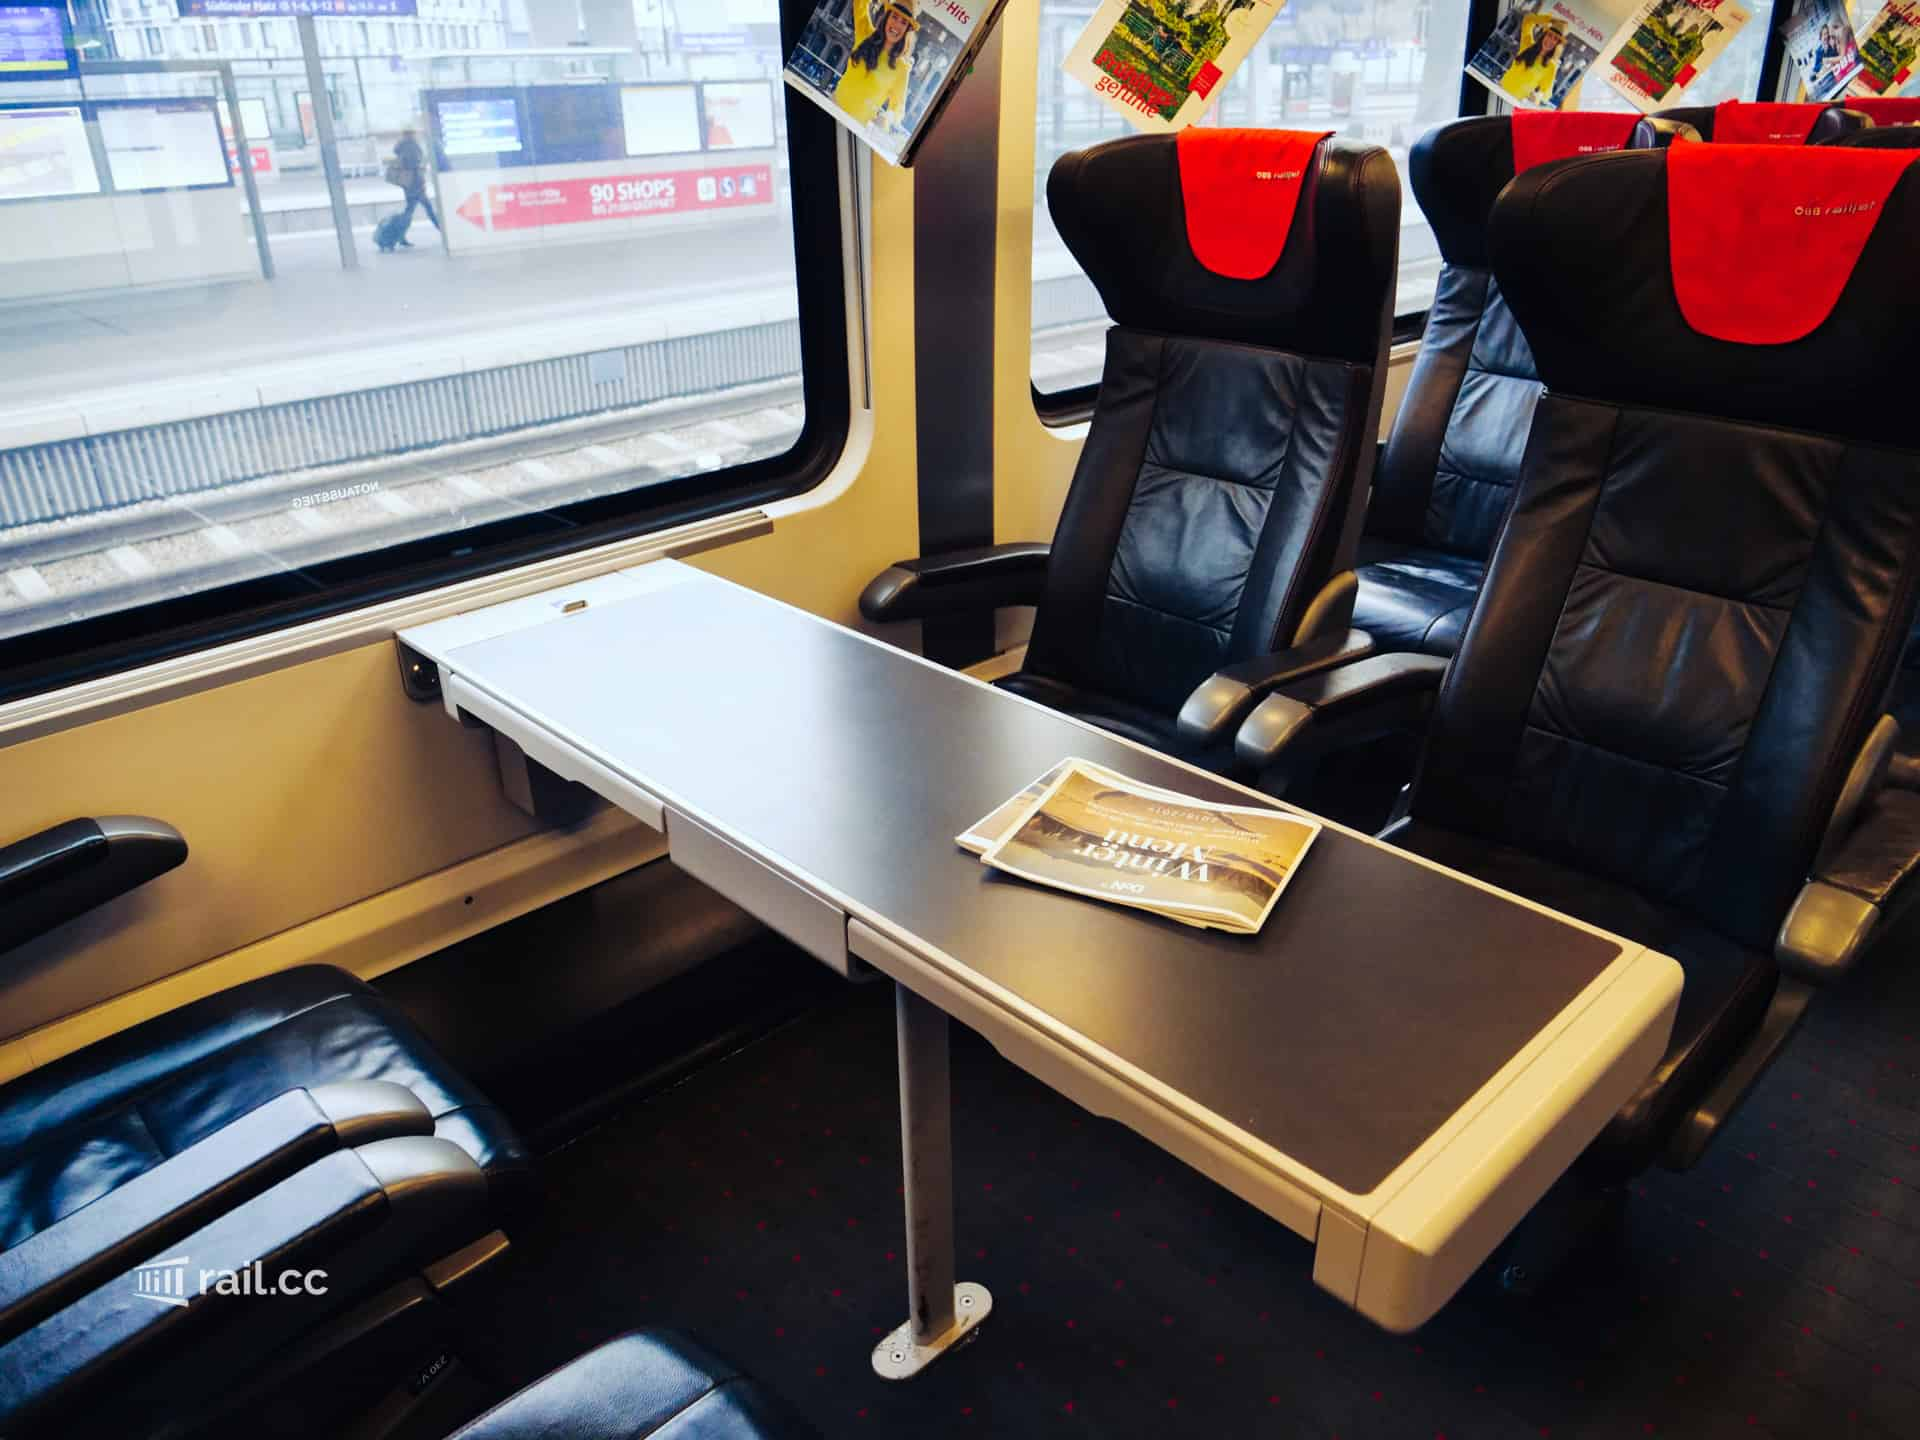 Seats with table in the Railjet